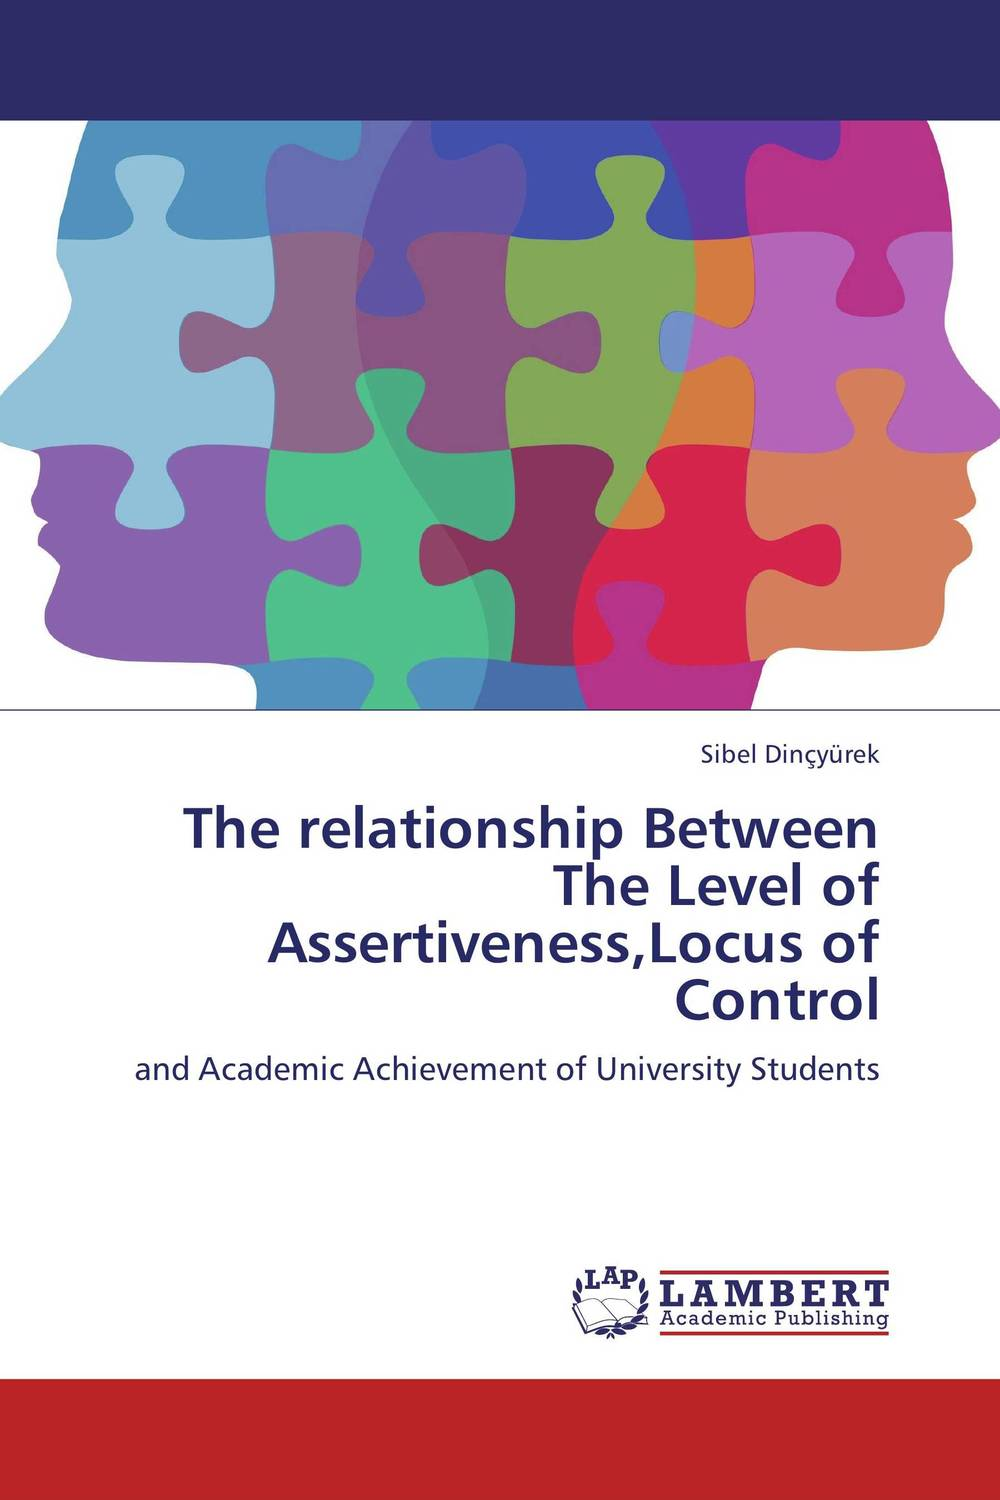 The relationship Between The Level of Assertiveness,Locus of Control tv антенну locus для дачи в москва